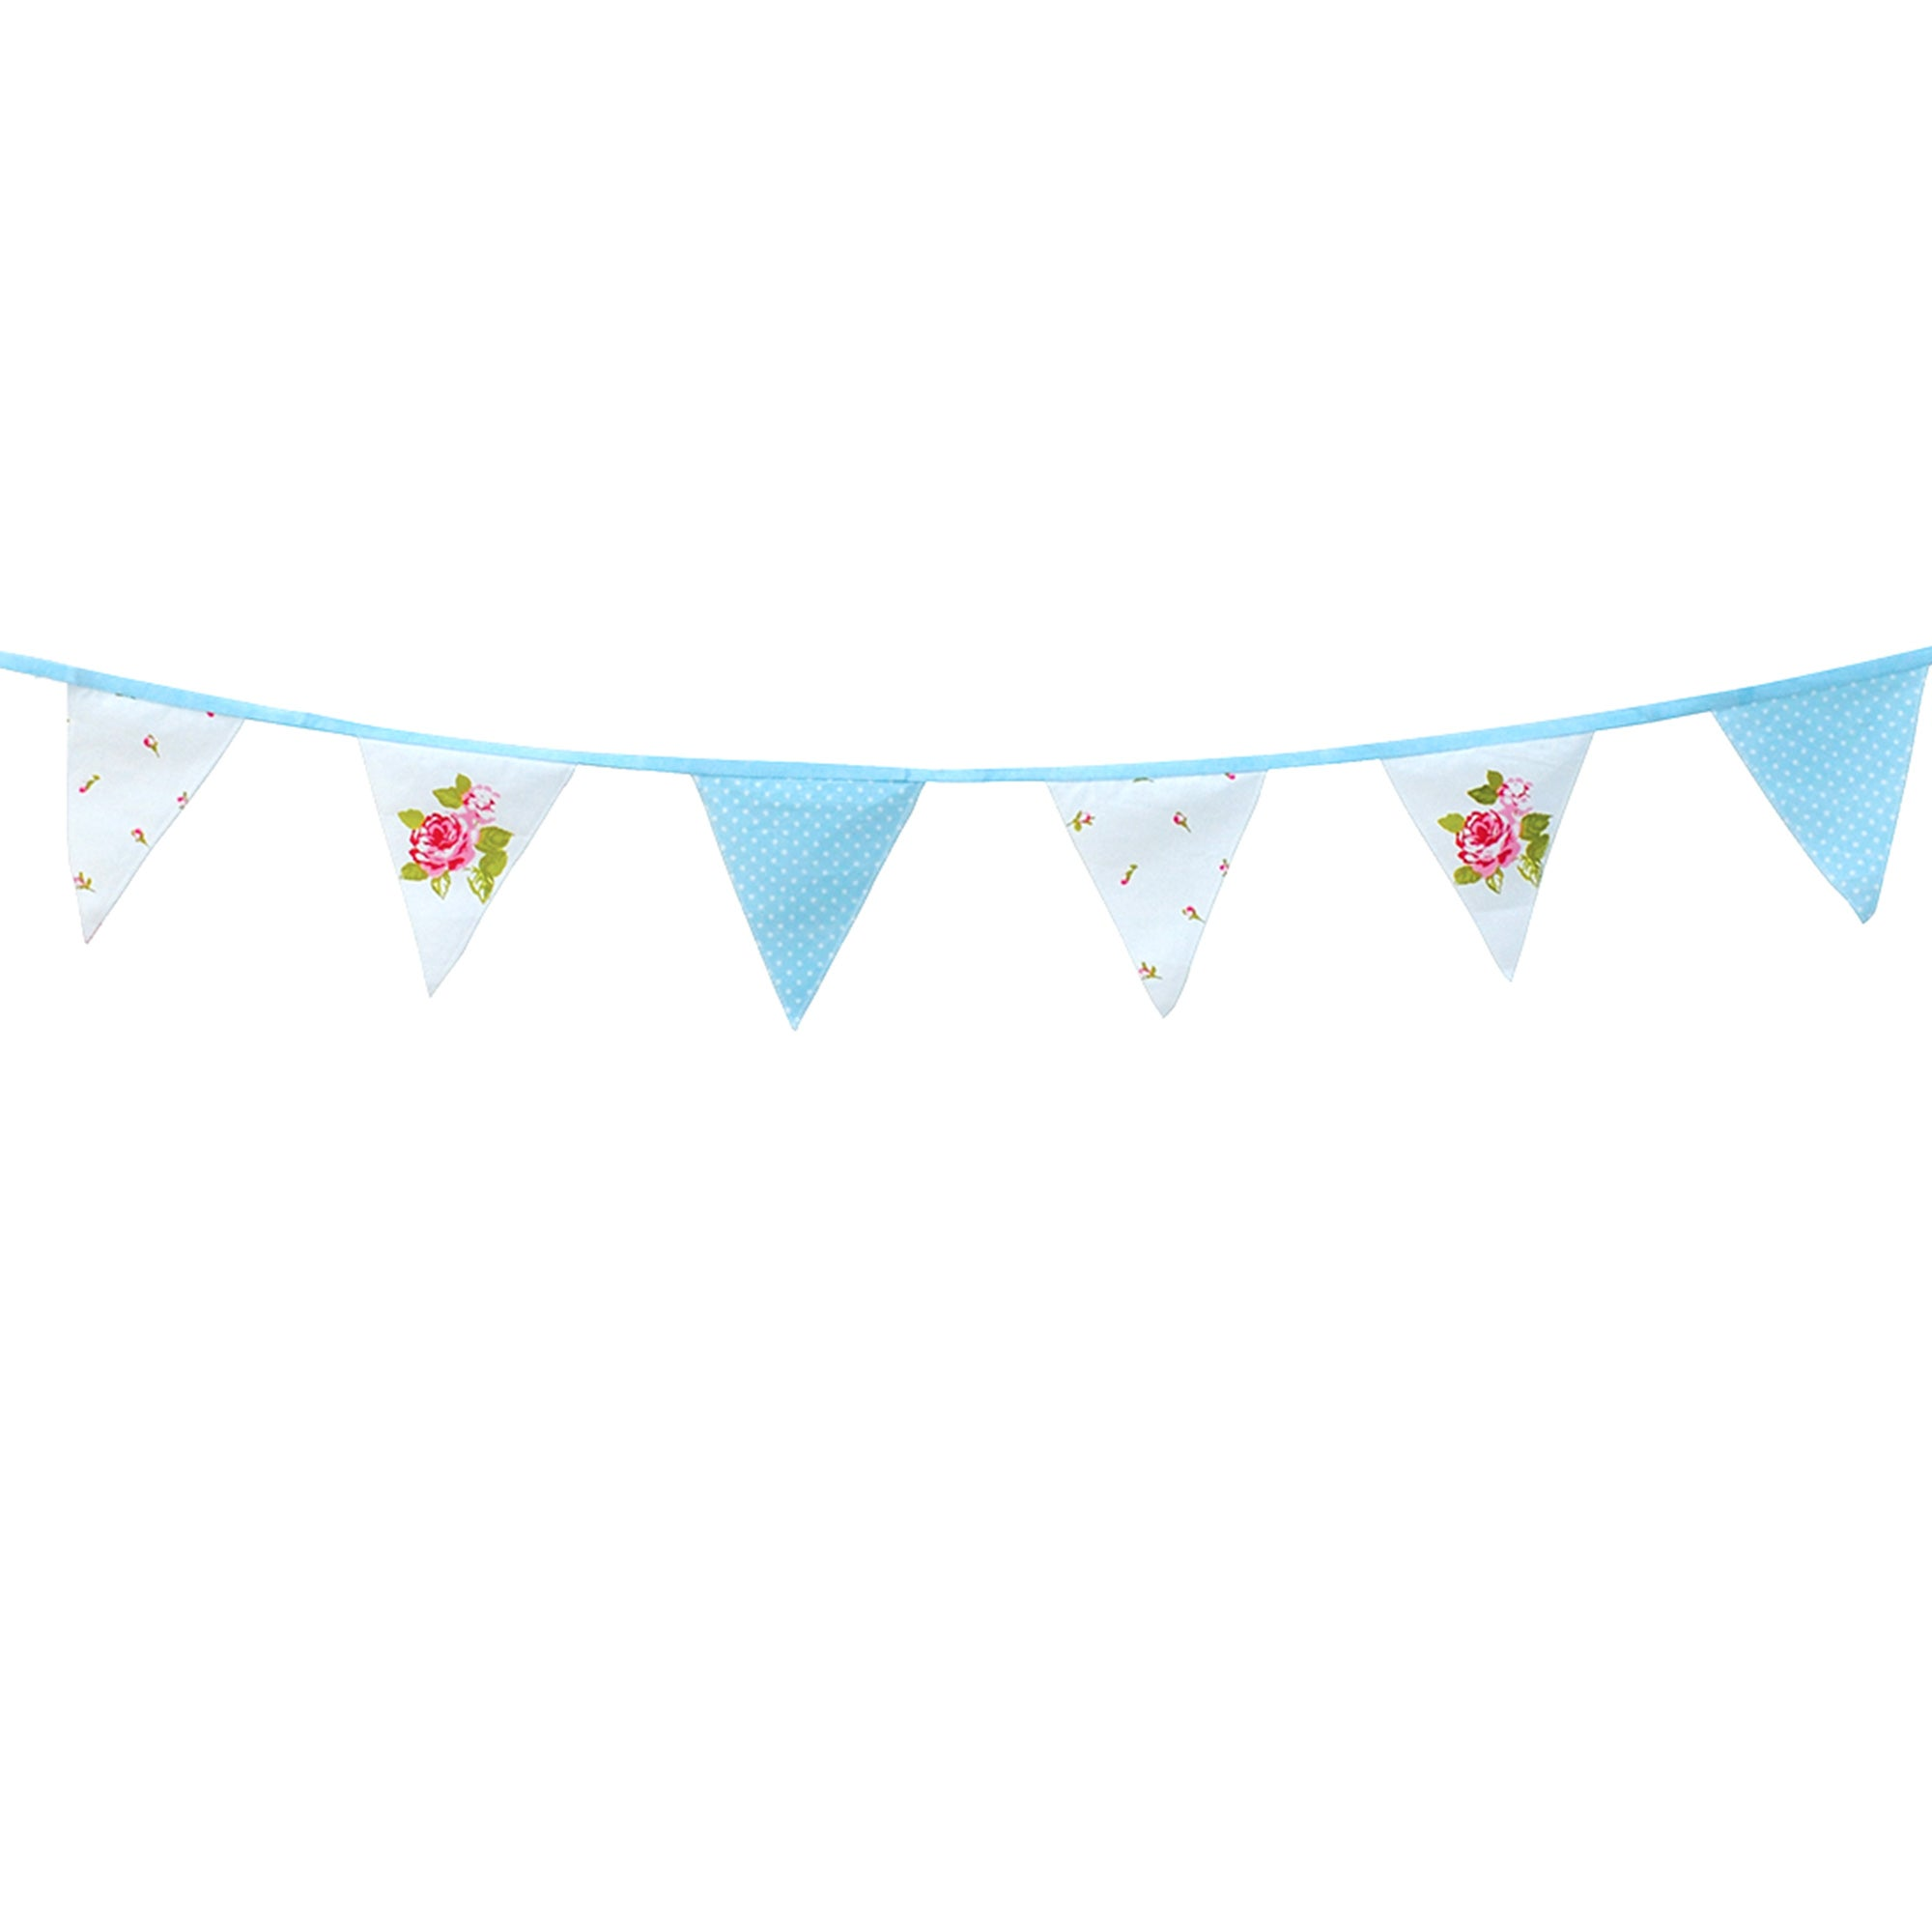 Rose and Ellis Clarendon Collection Fabric Bunting